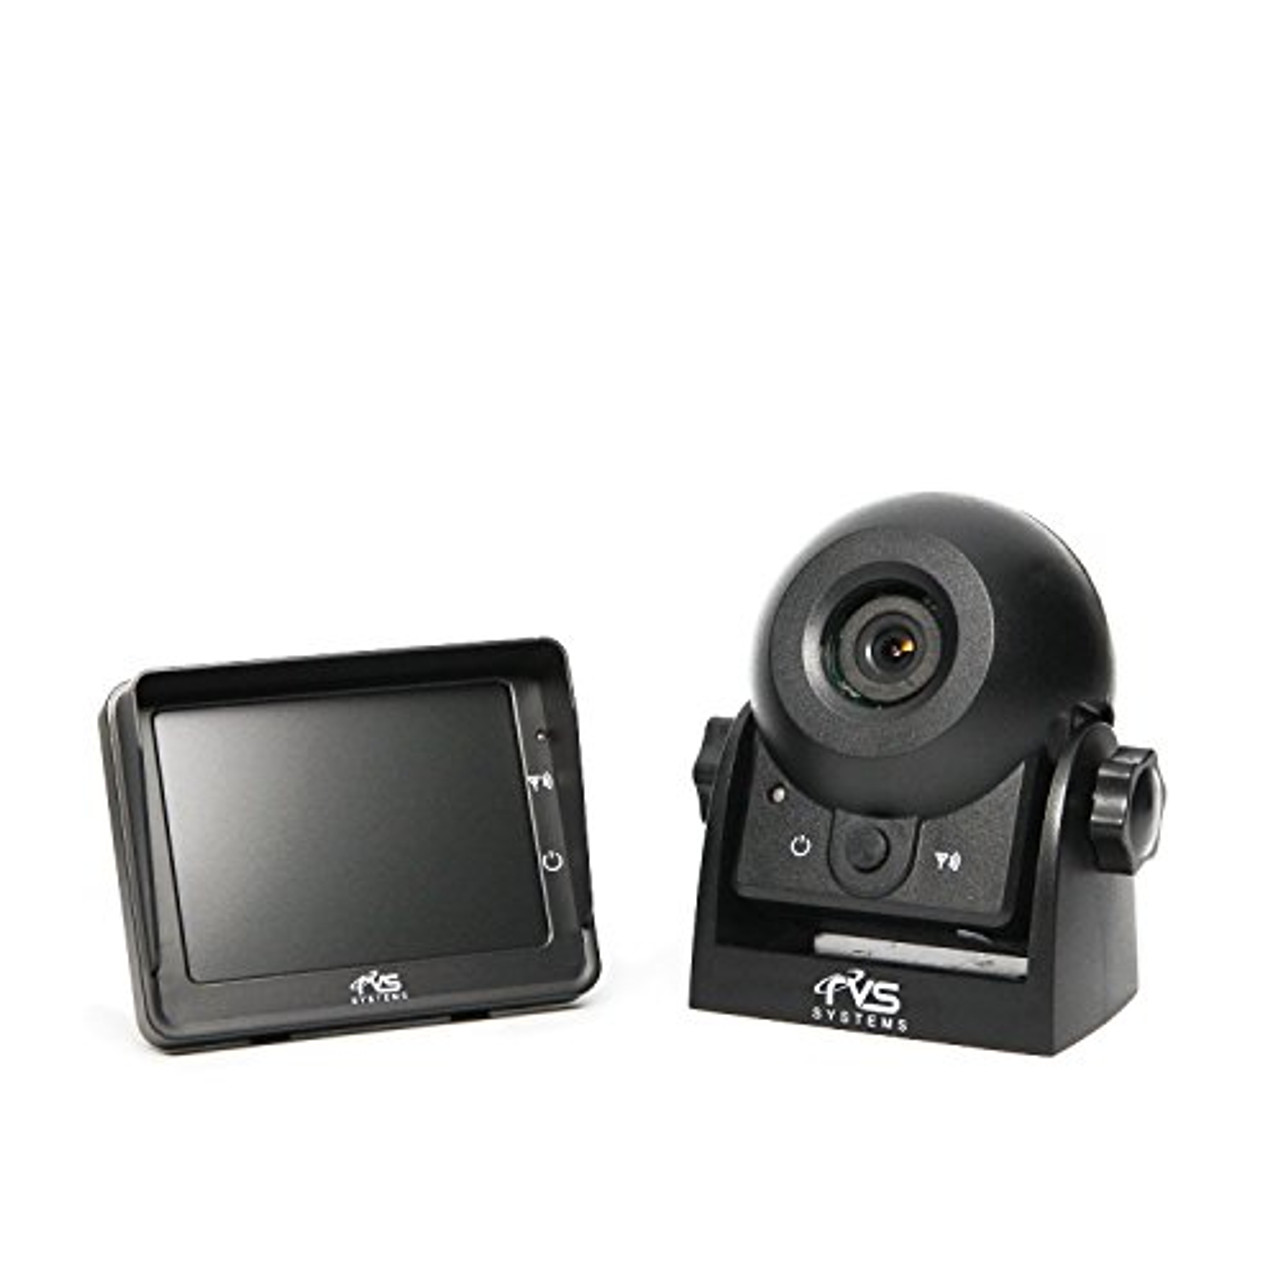 Rear View Safety RVS-83112 Video Camera with 3.5-Inch LCD (Black)   0211XKUTDY7